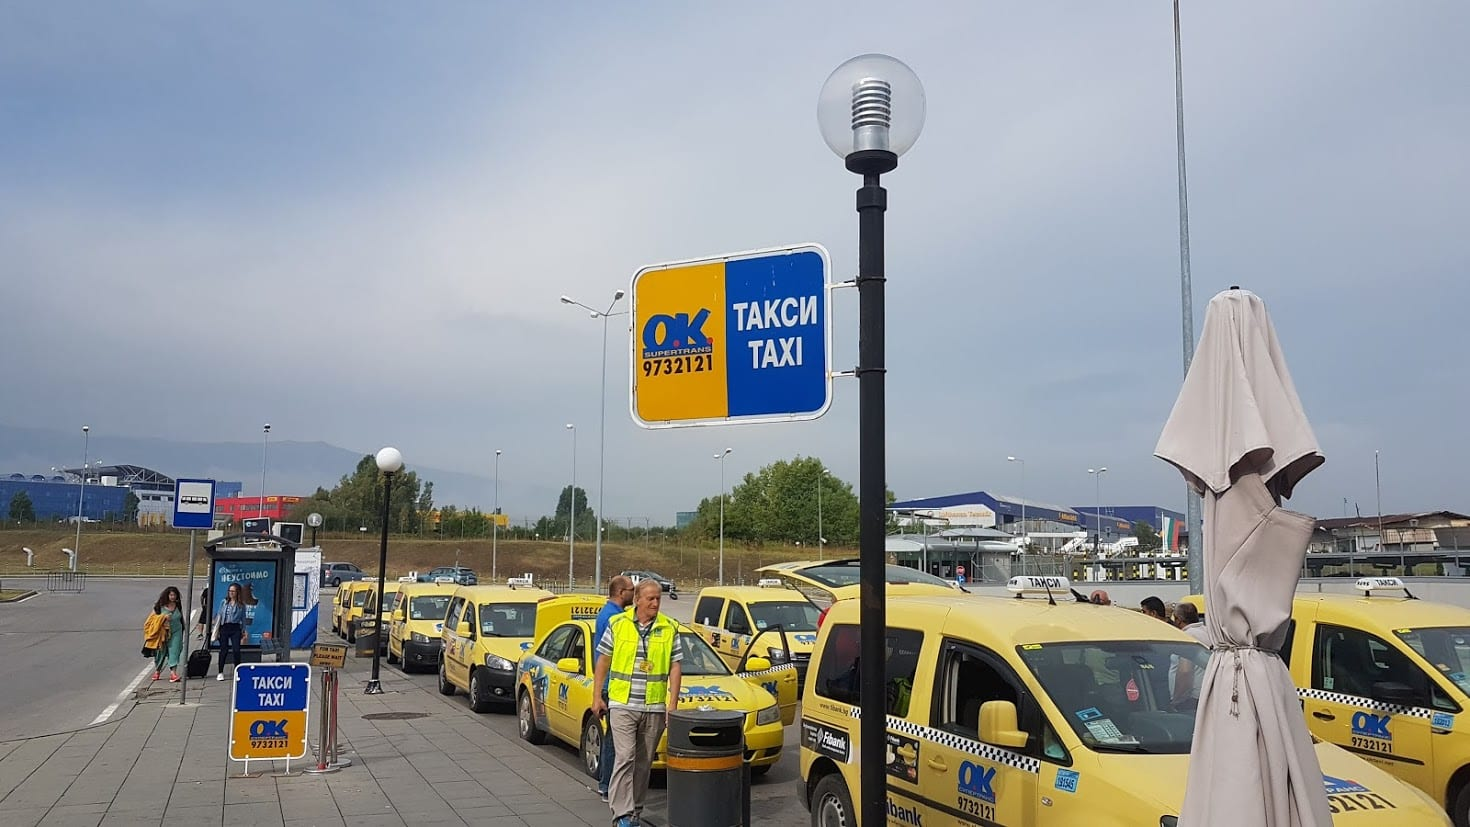 Sofia Airport Taxis